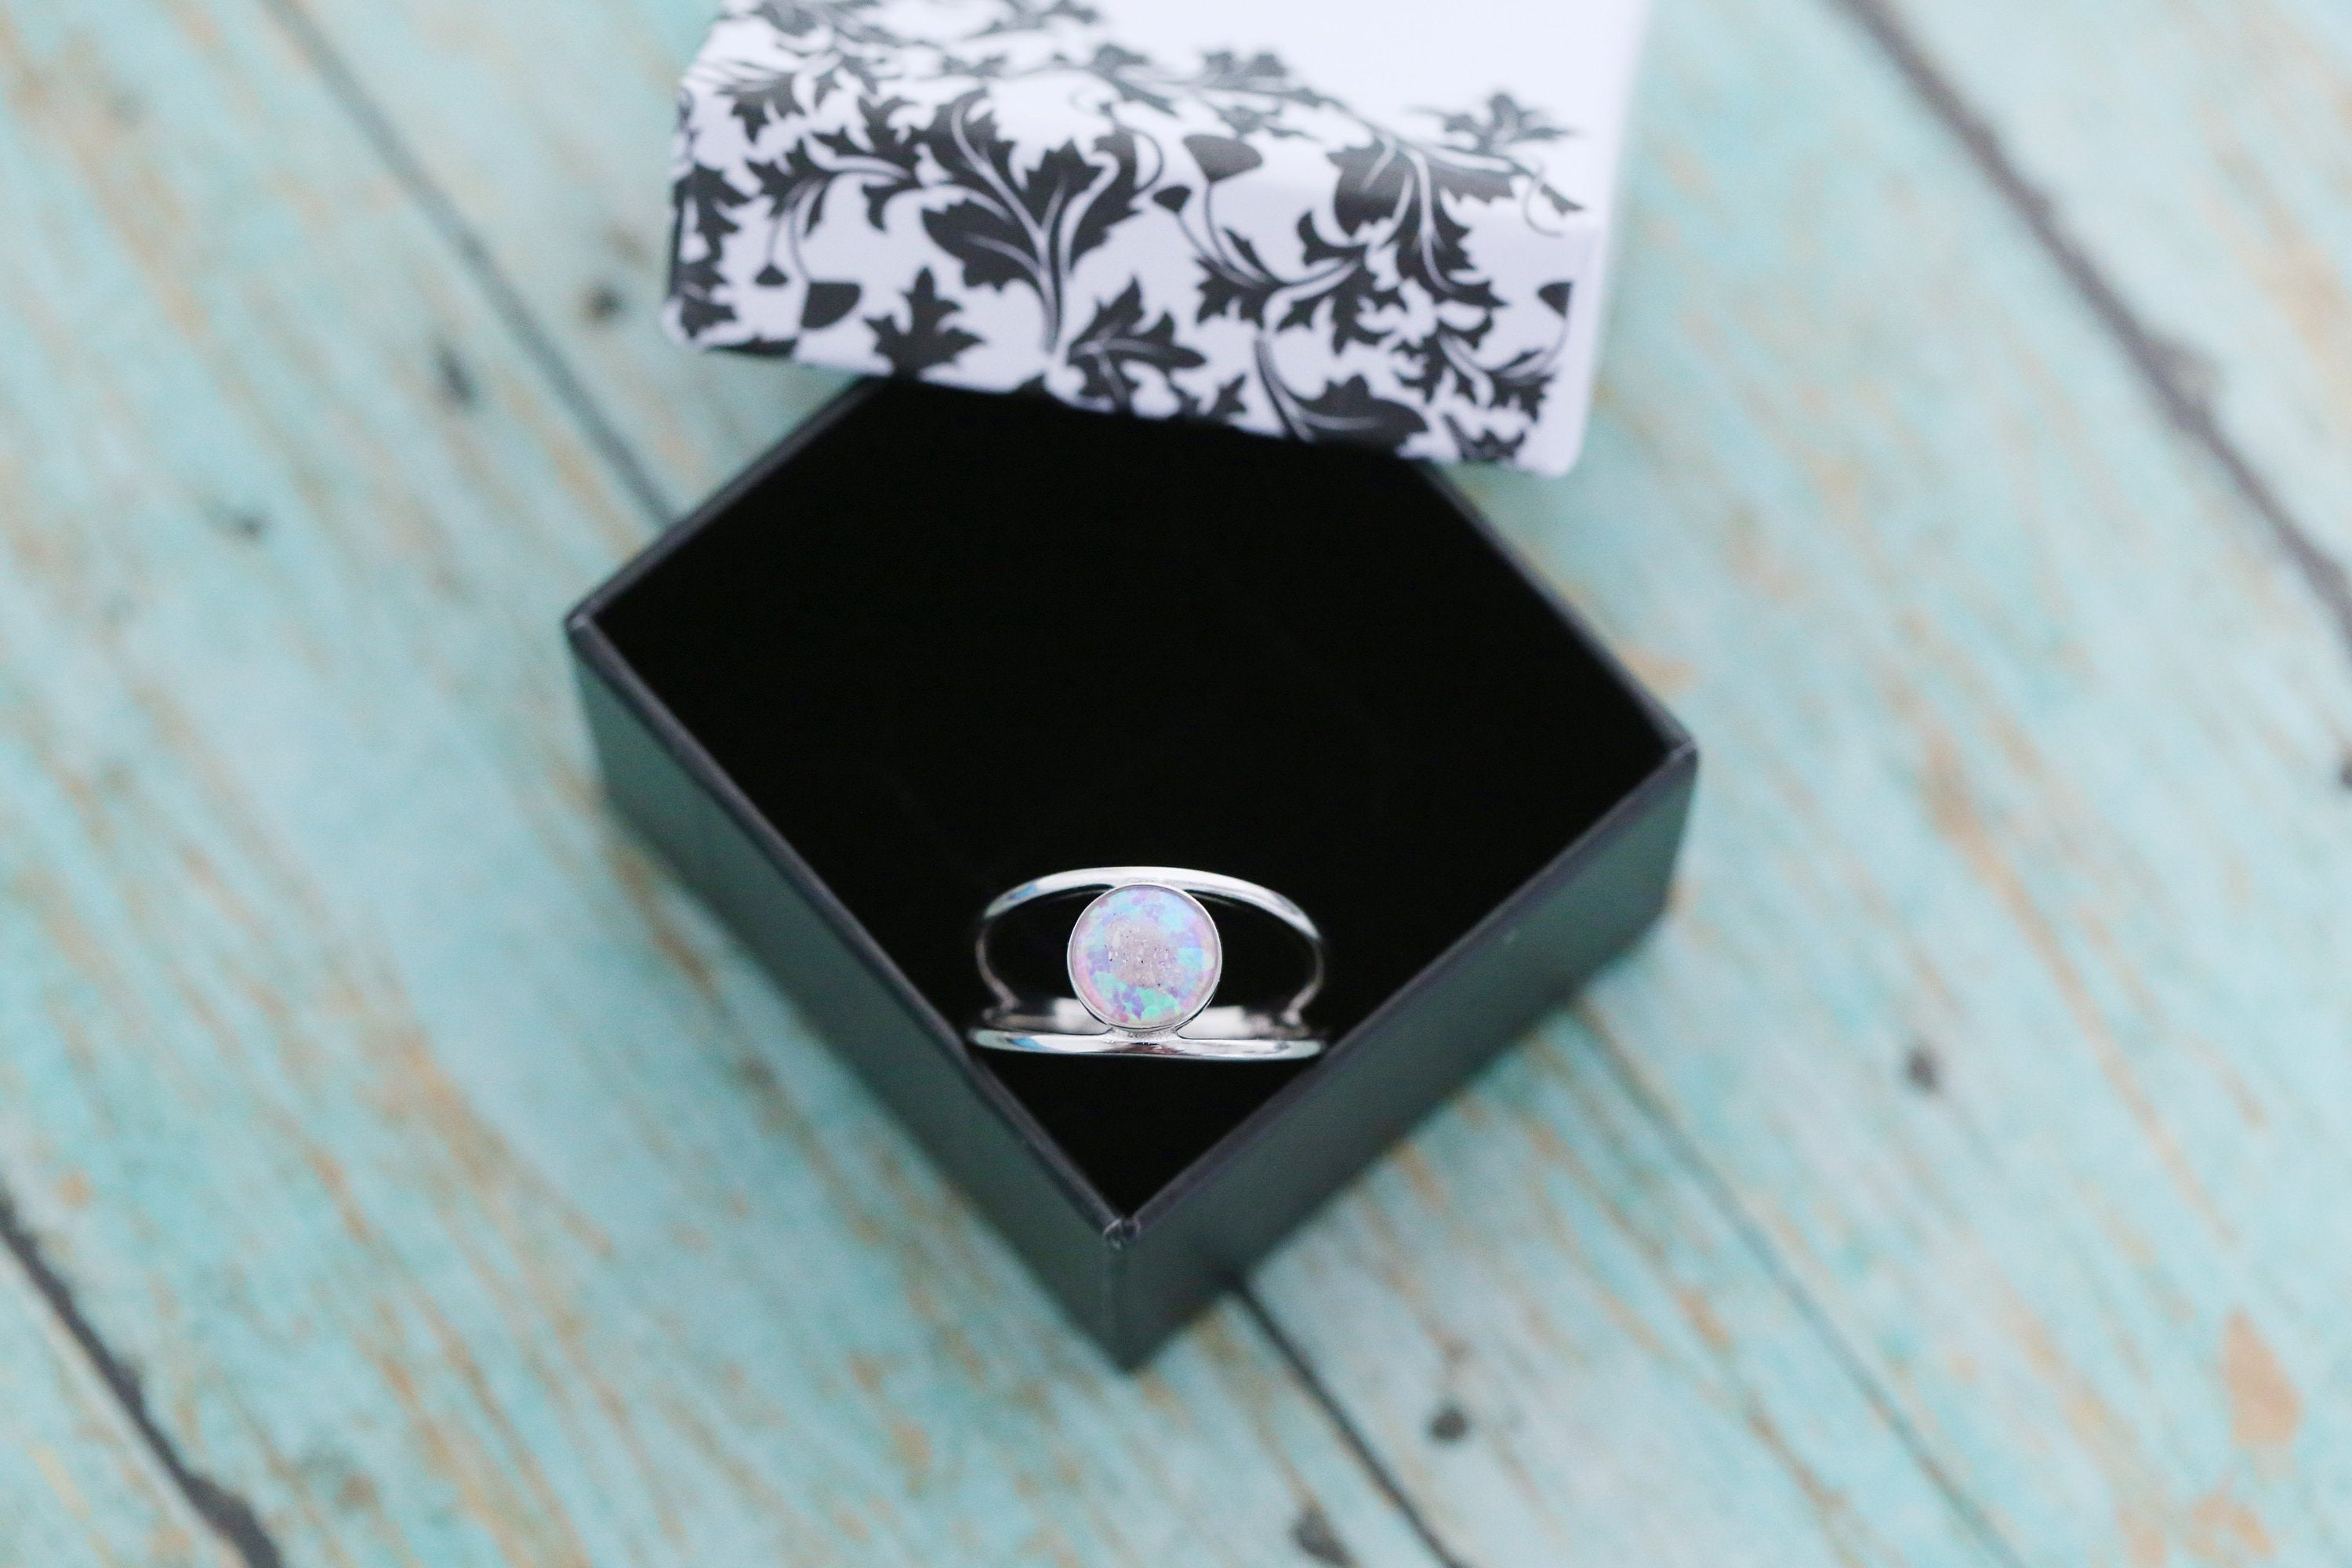 8mm Opal Cremation Ring - Sterling Silver Ash Stone Ring - Cremation Jewelry - Ash Ring - Ash Jewelry - Urn Ring - Urn Jewelry - LifeStone